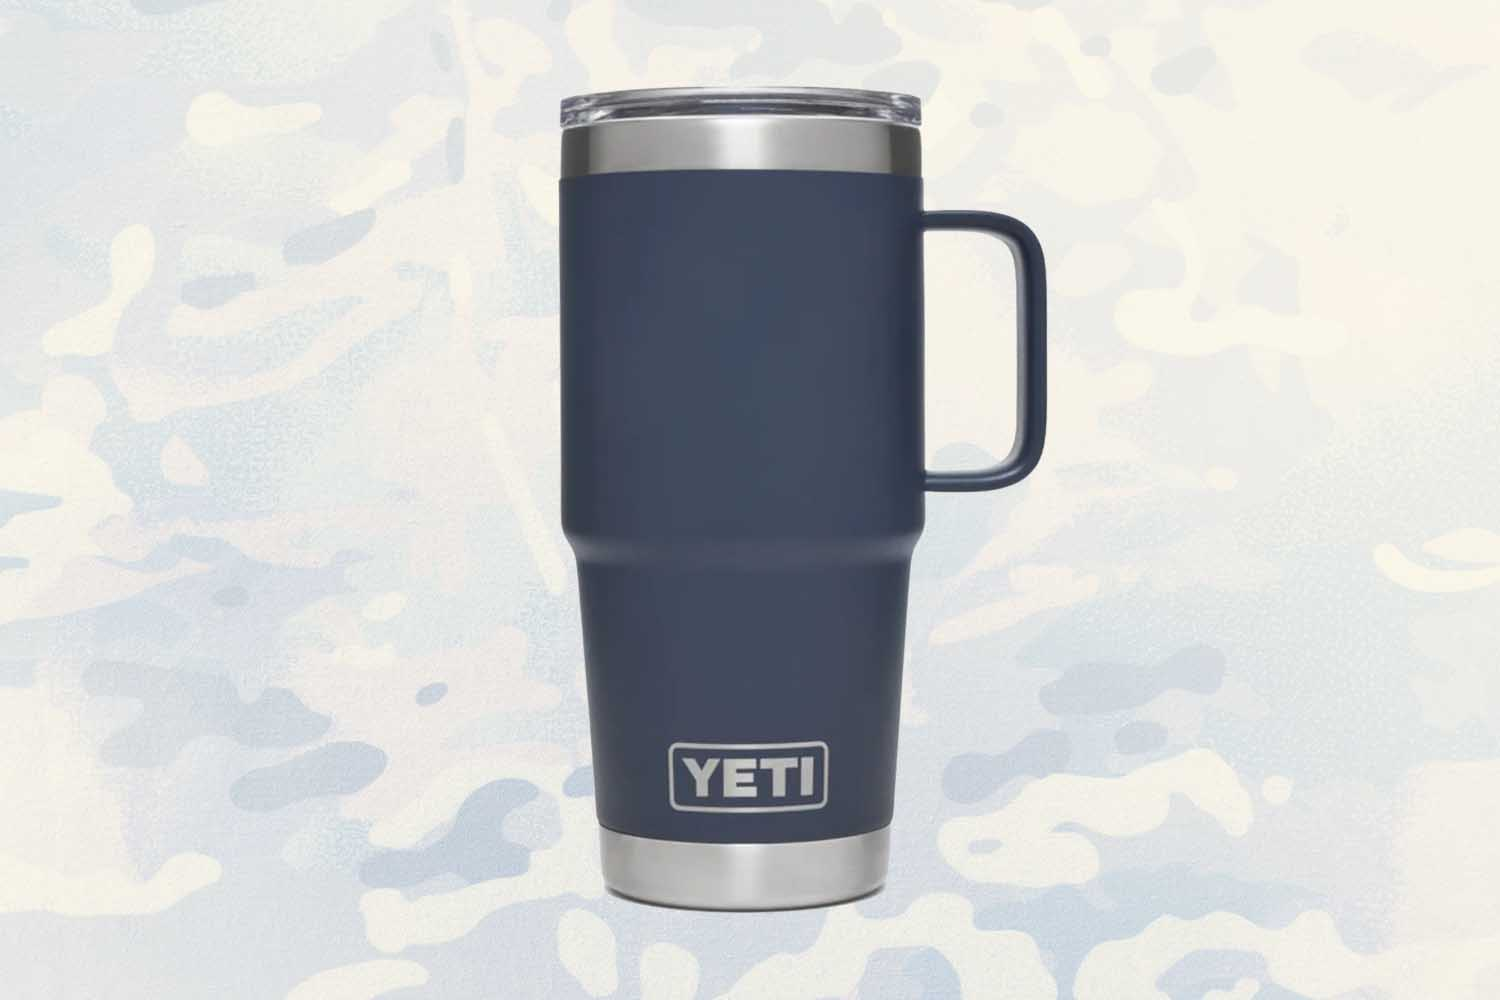 Yeti Just Dropped A Seriously Leak Proof New Travel Mug Insidehook